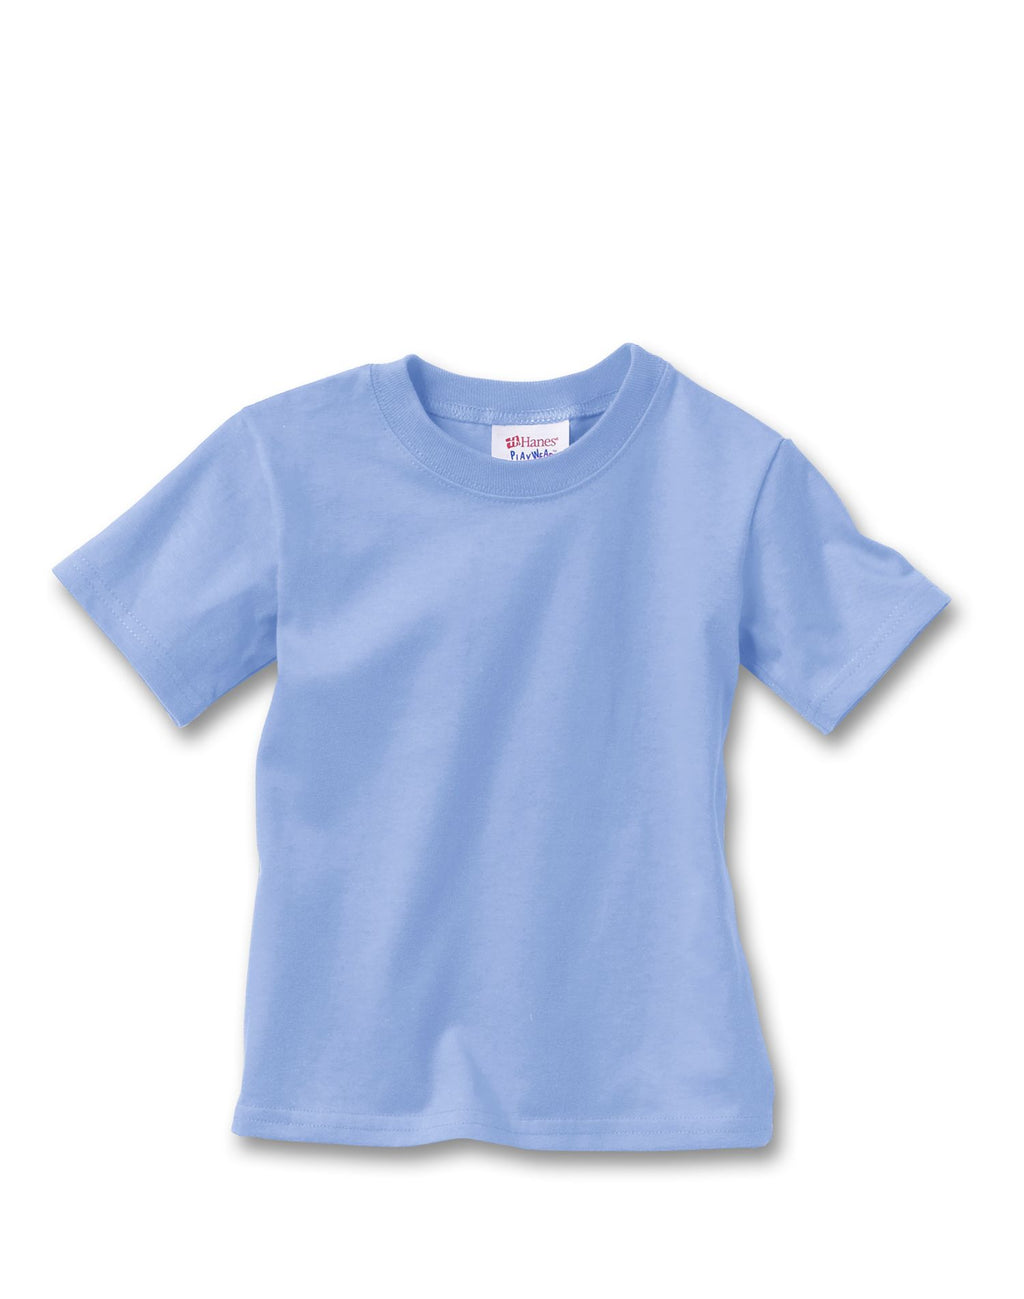 Hanes Playwear Toddler Tee 5.2 oz